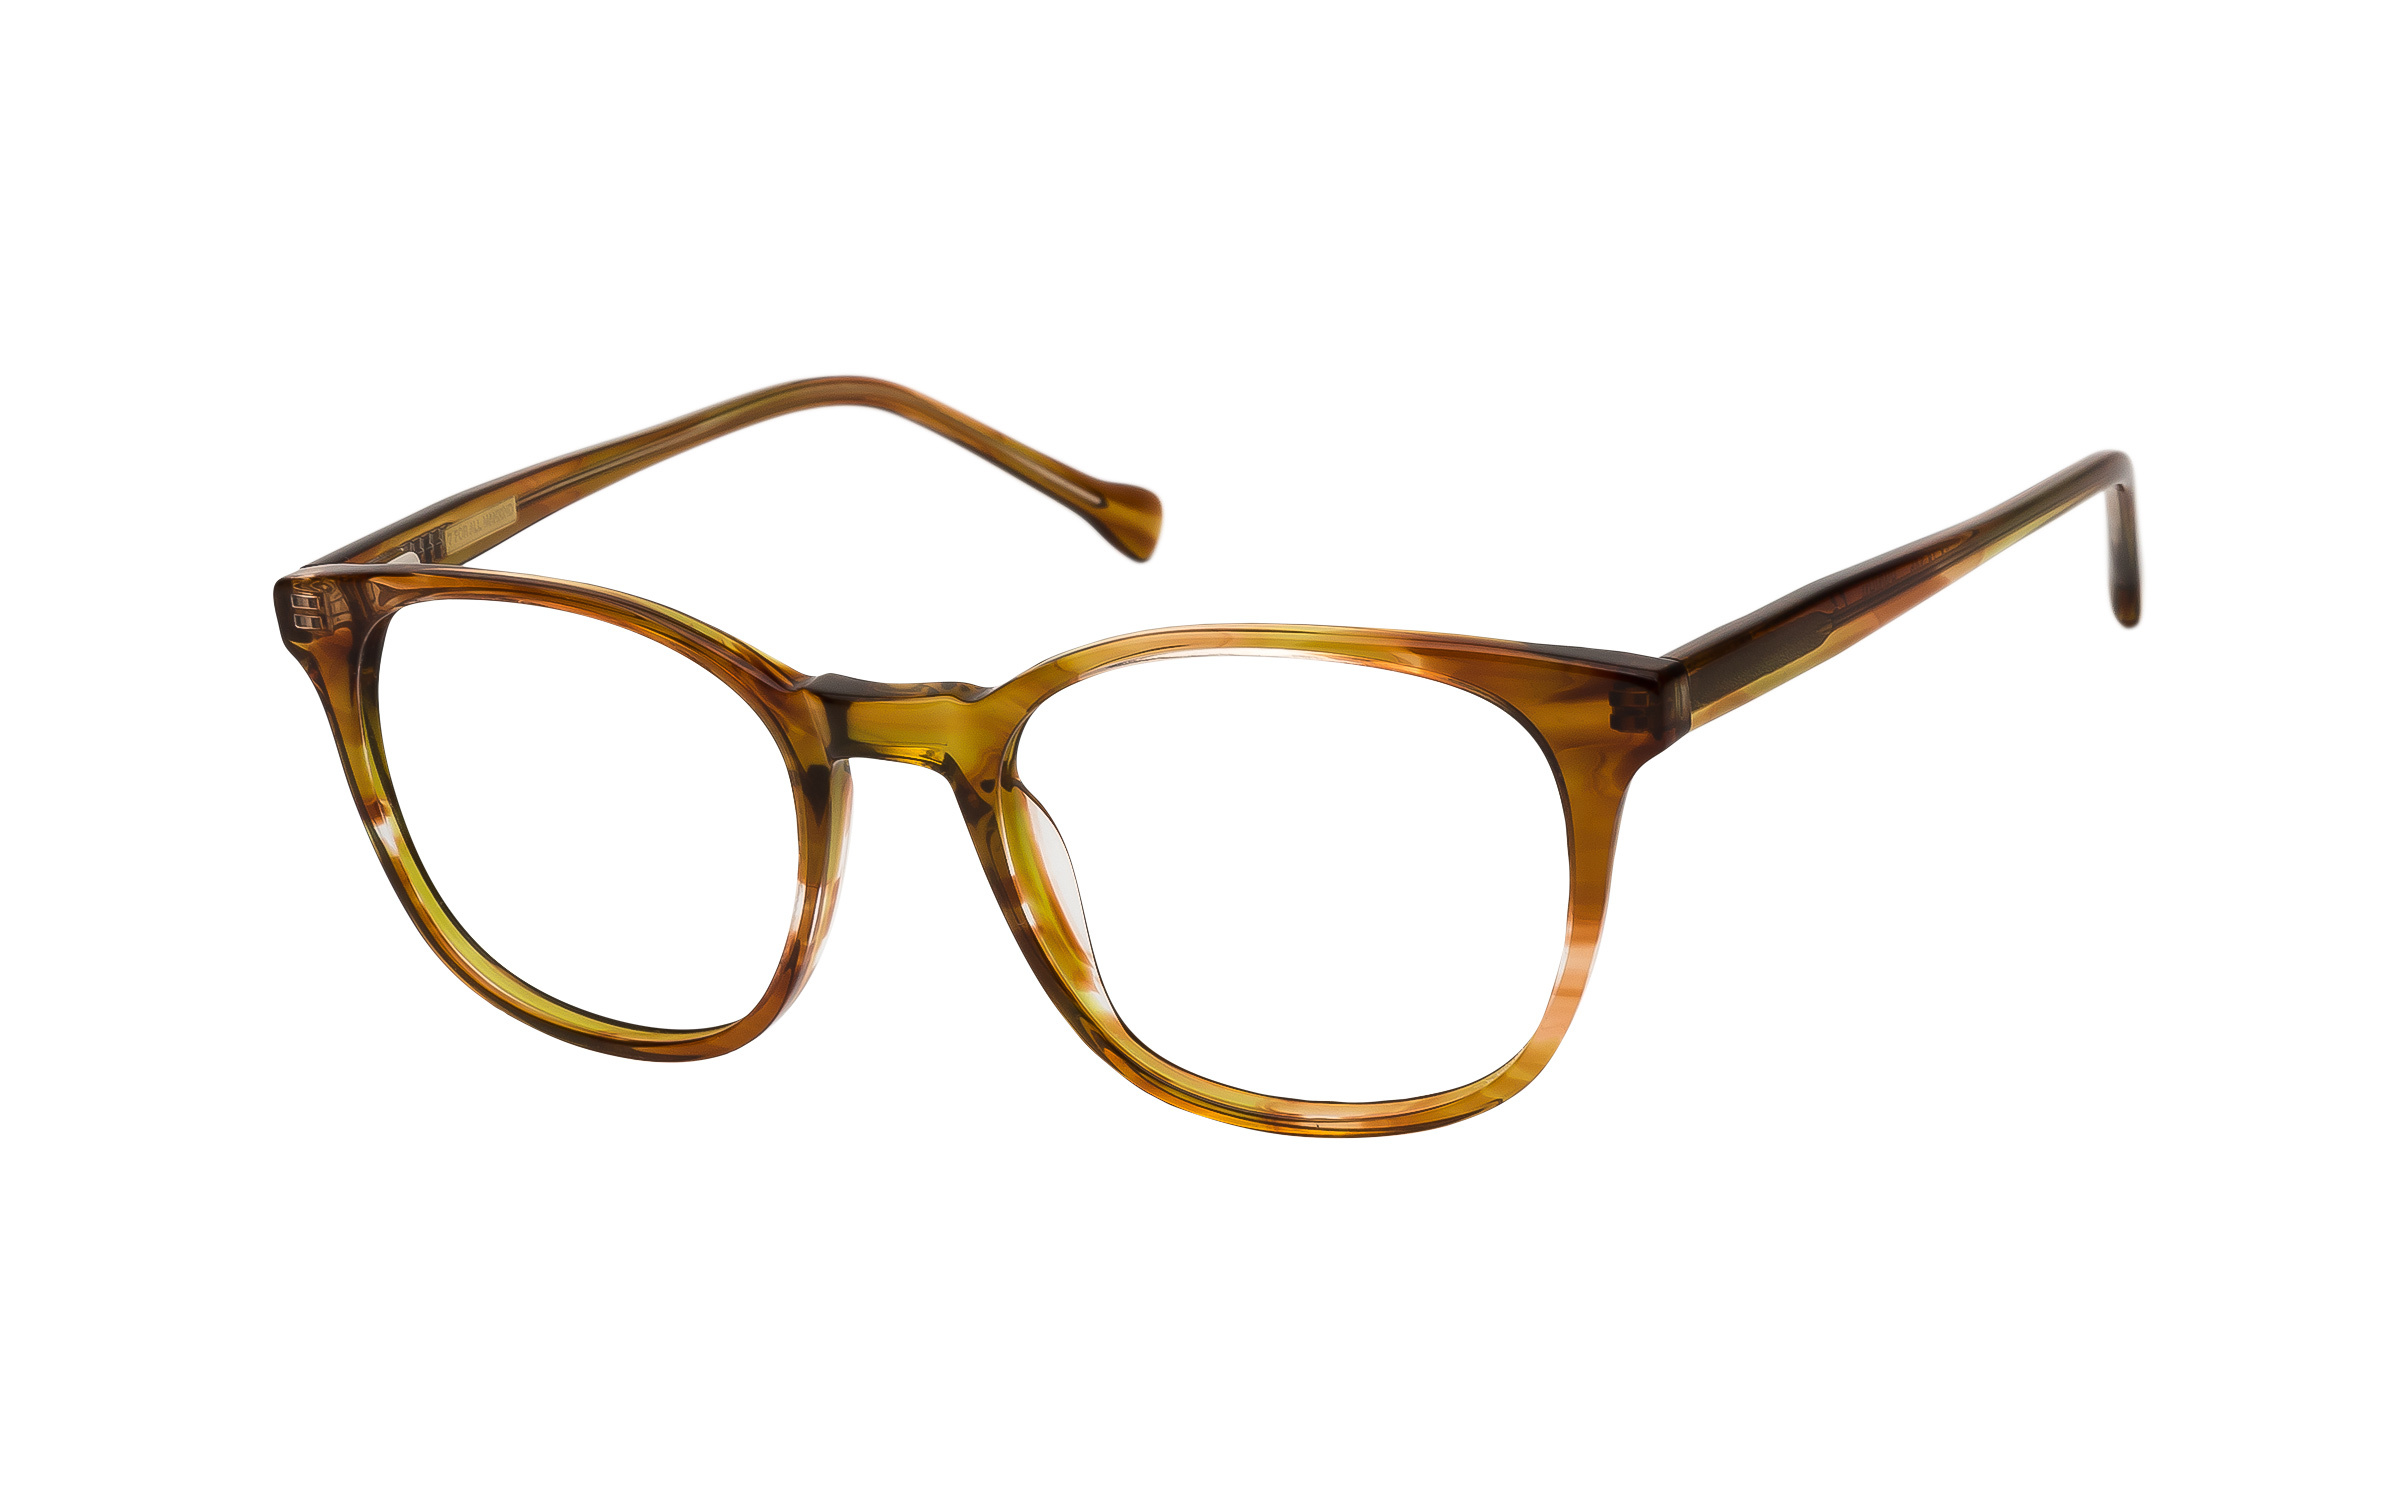 7 for All Mankind Glasses D-Frame Yellow/Brown/Clear Acetate Online Clearly